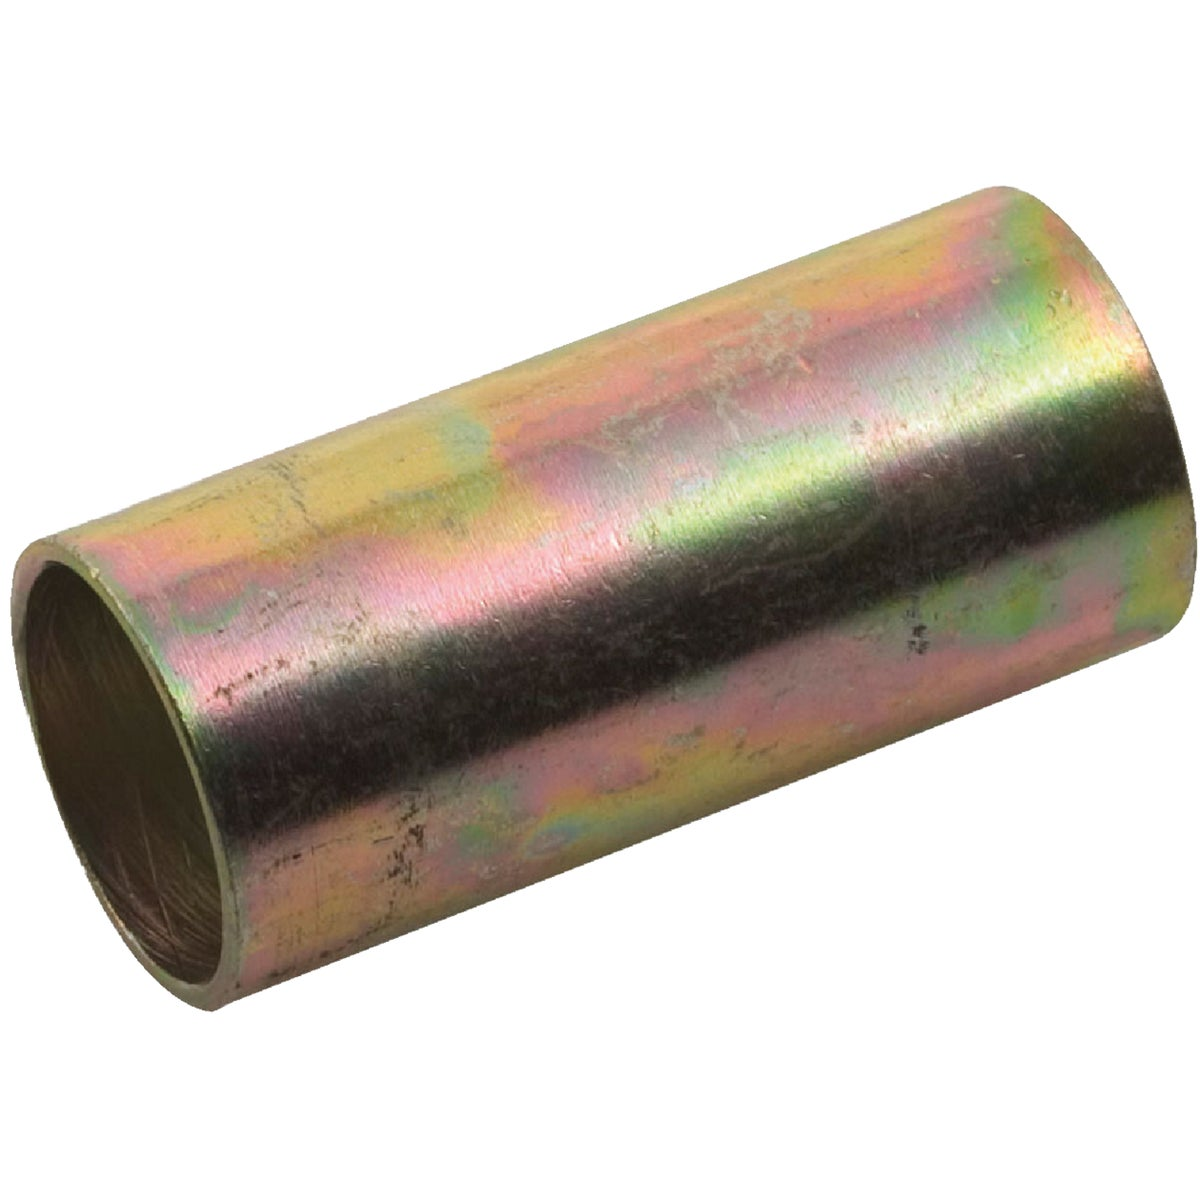 "3/4X1X2""TOP LINK BUSHING - S08030100-B831 by Speeco Farmex"